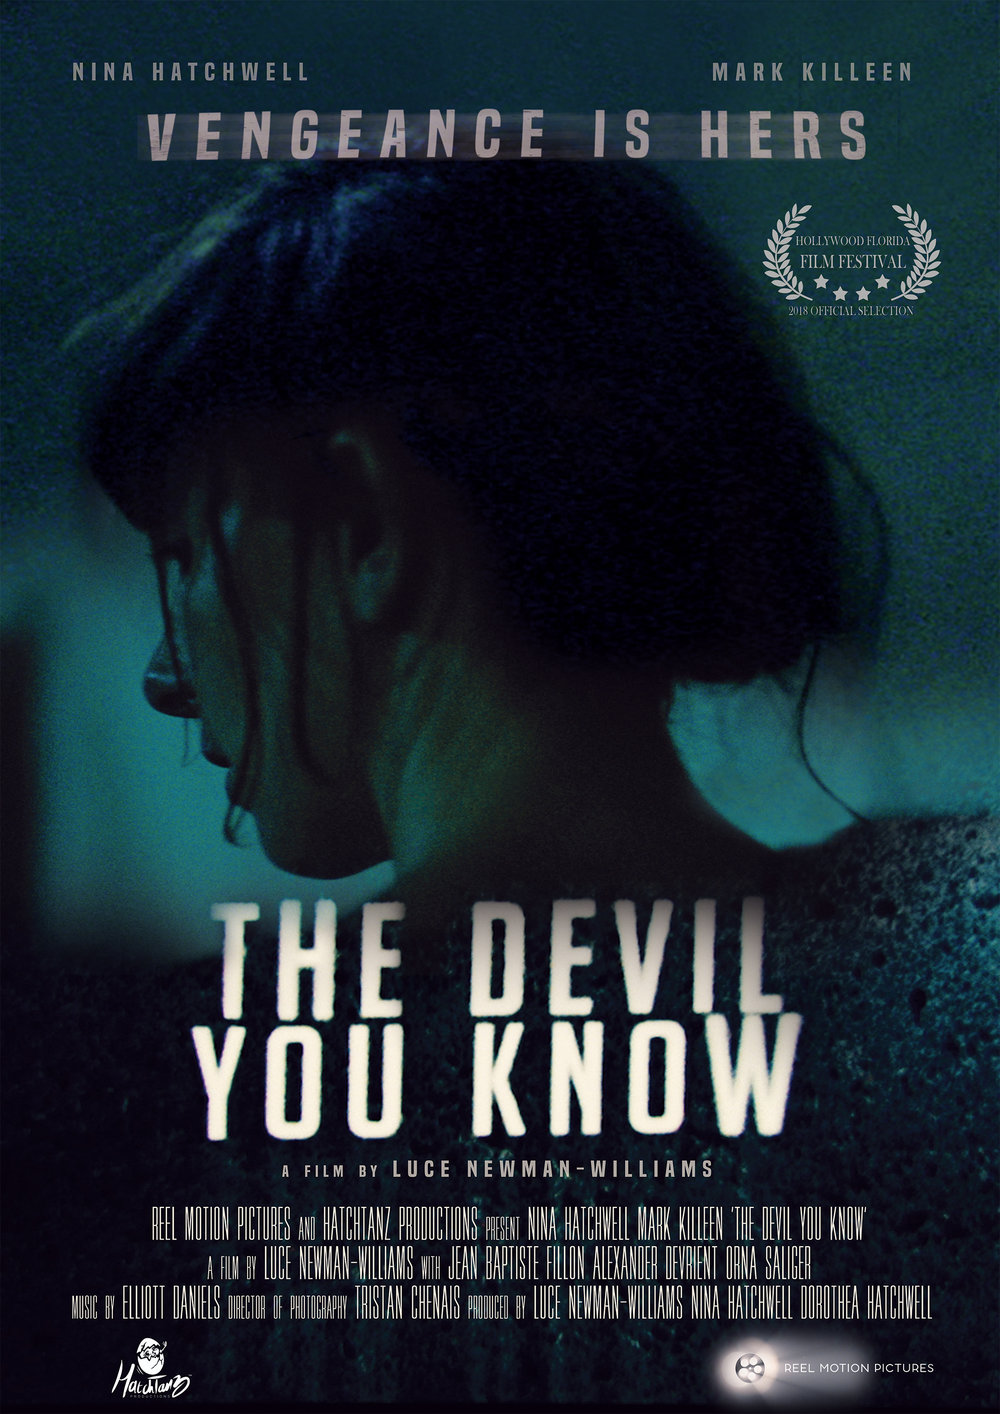 Nina Hatchwell wins Best Actress award for her performance in THE DEVIL YOU KNOW -